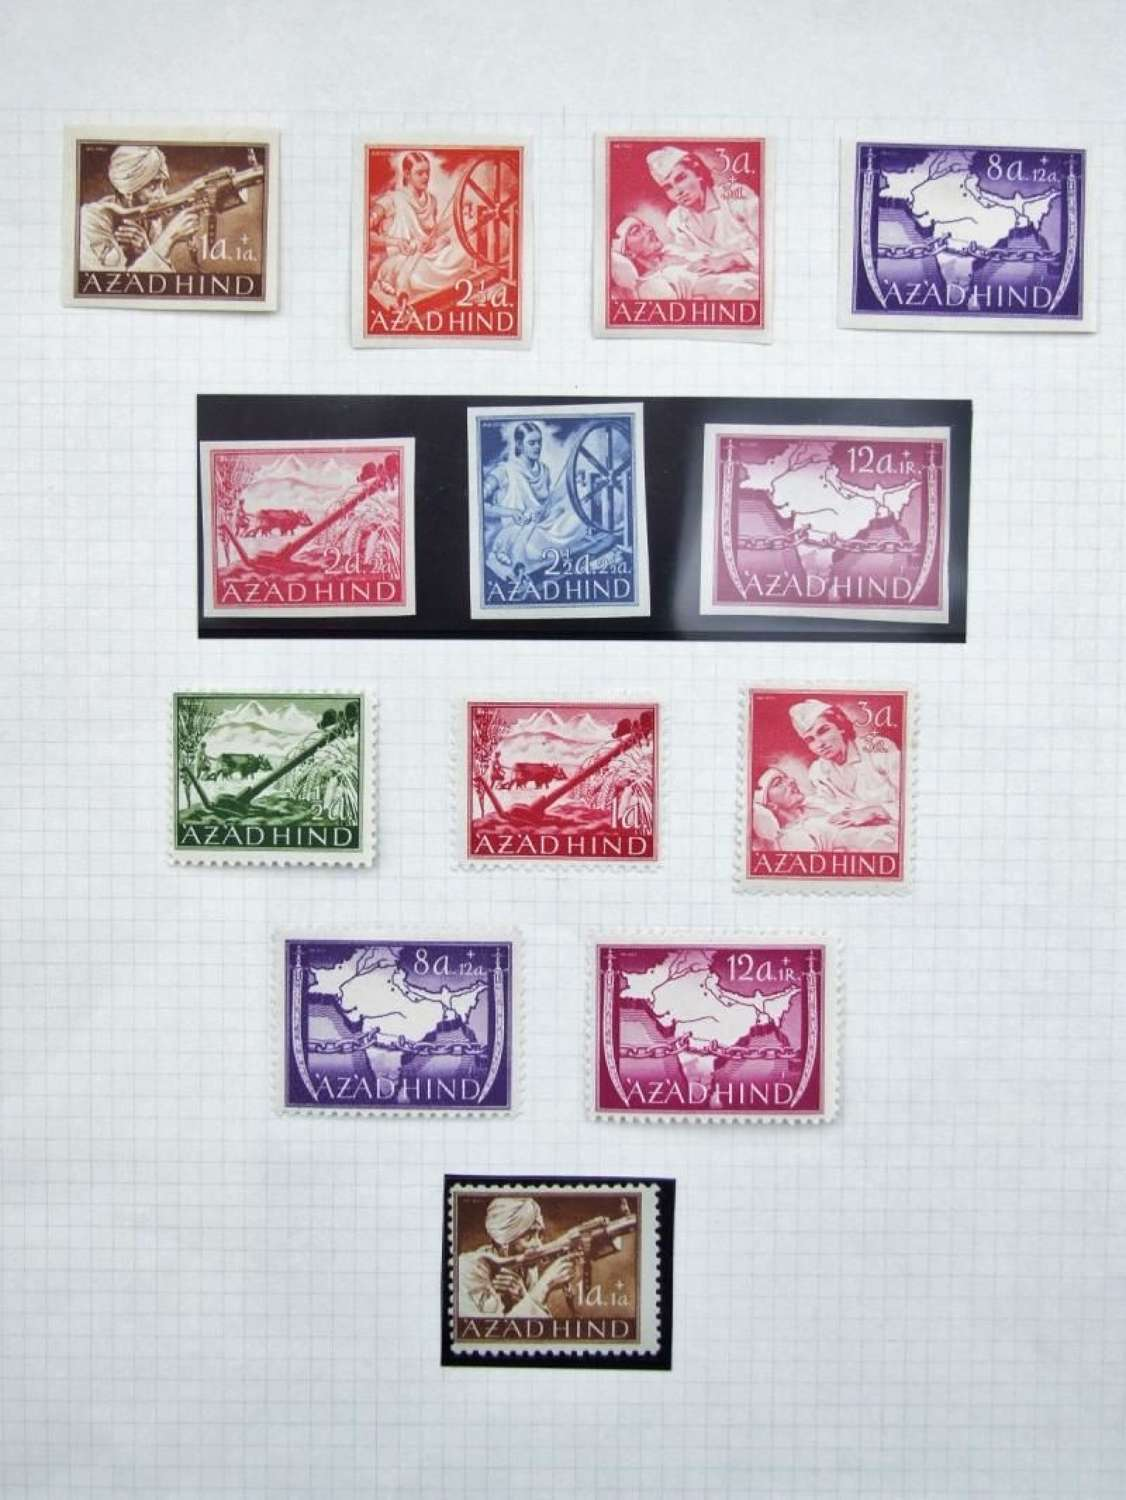 A collection of 13 Azad Hind stamps